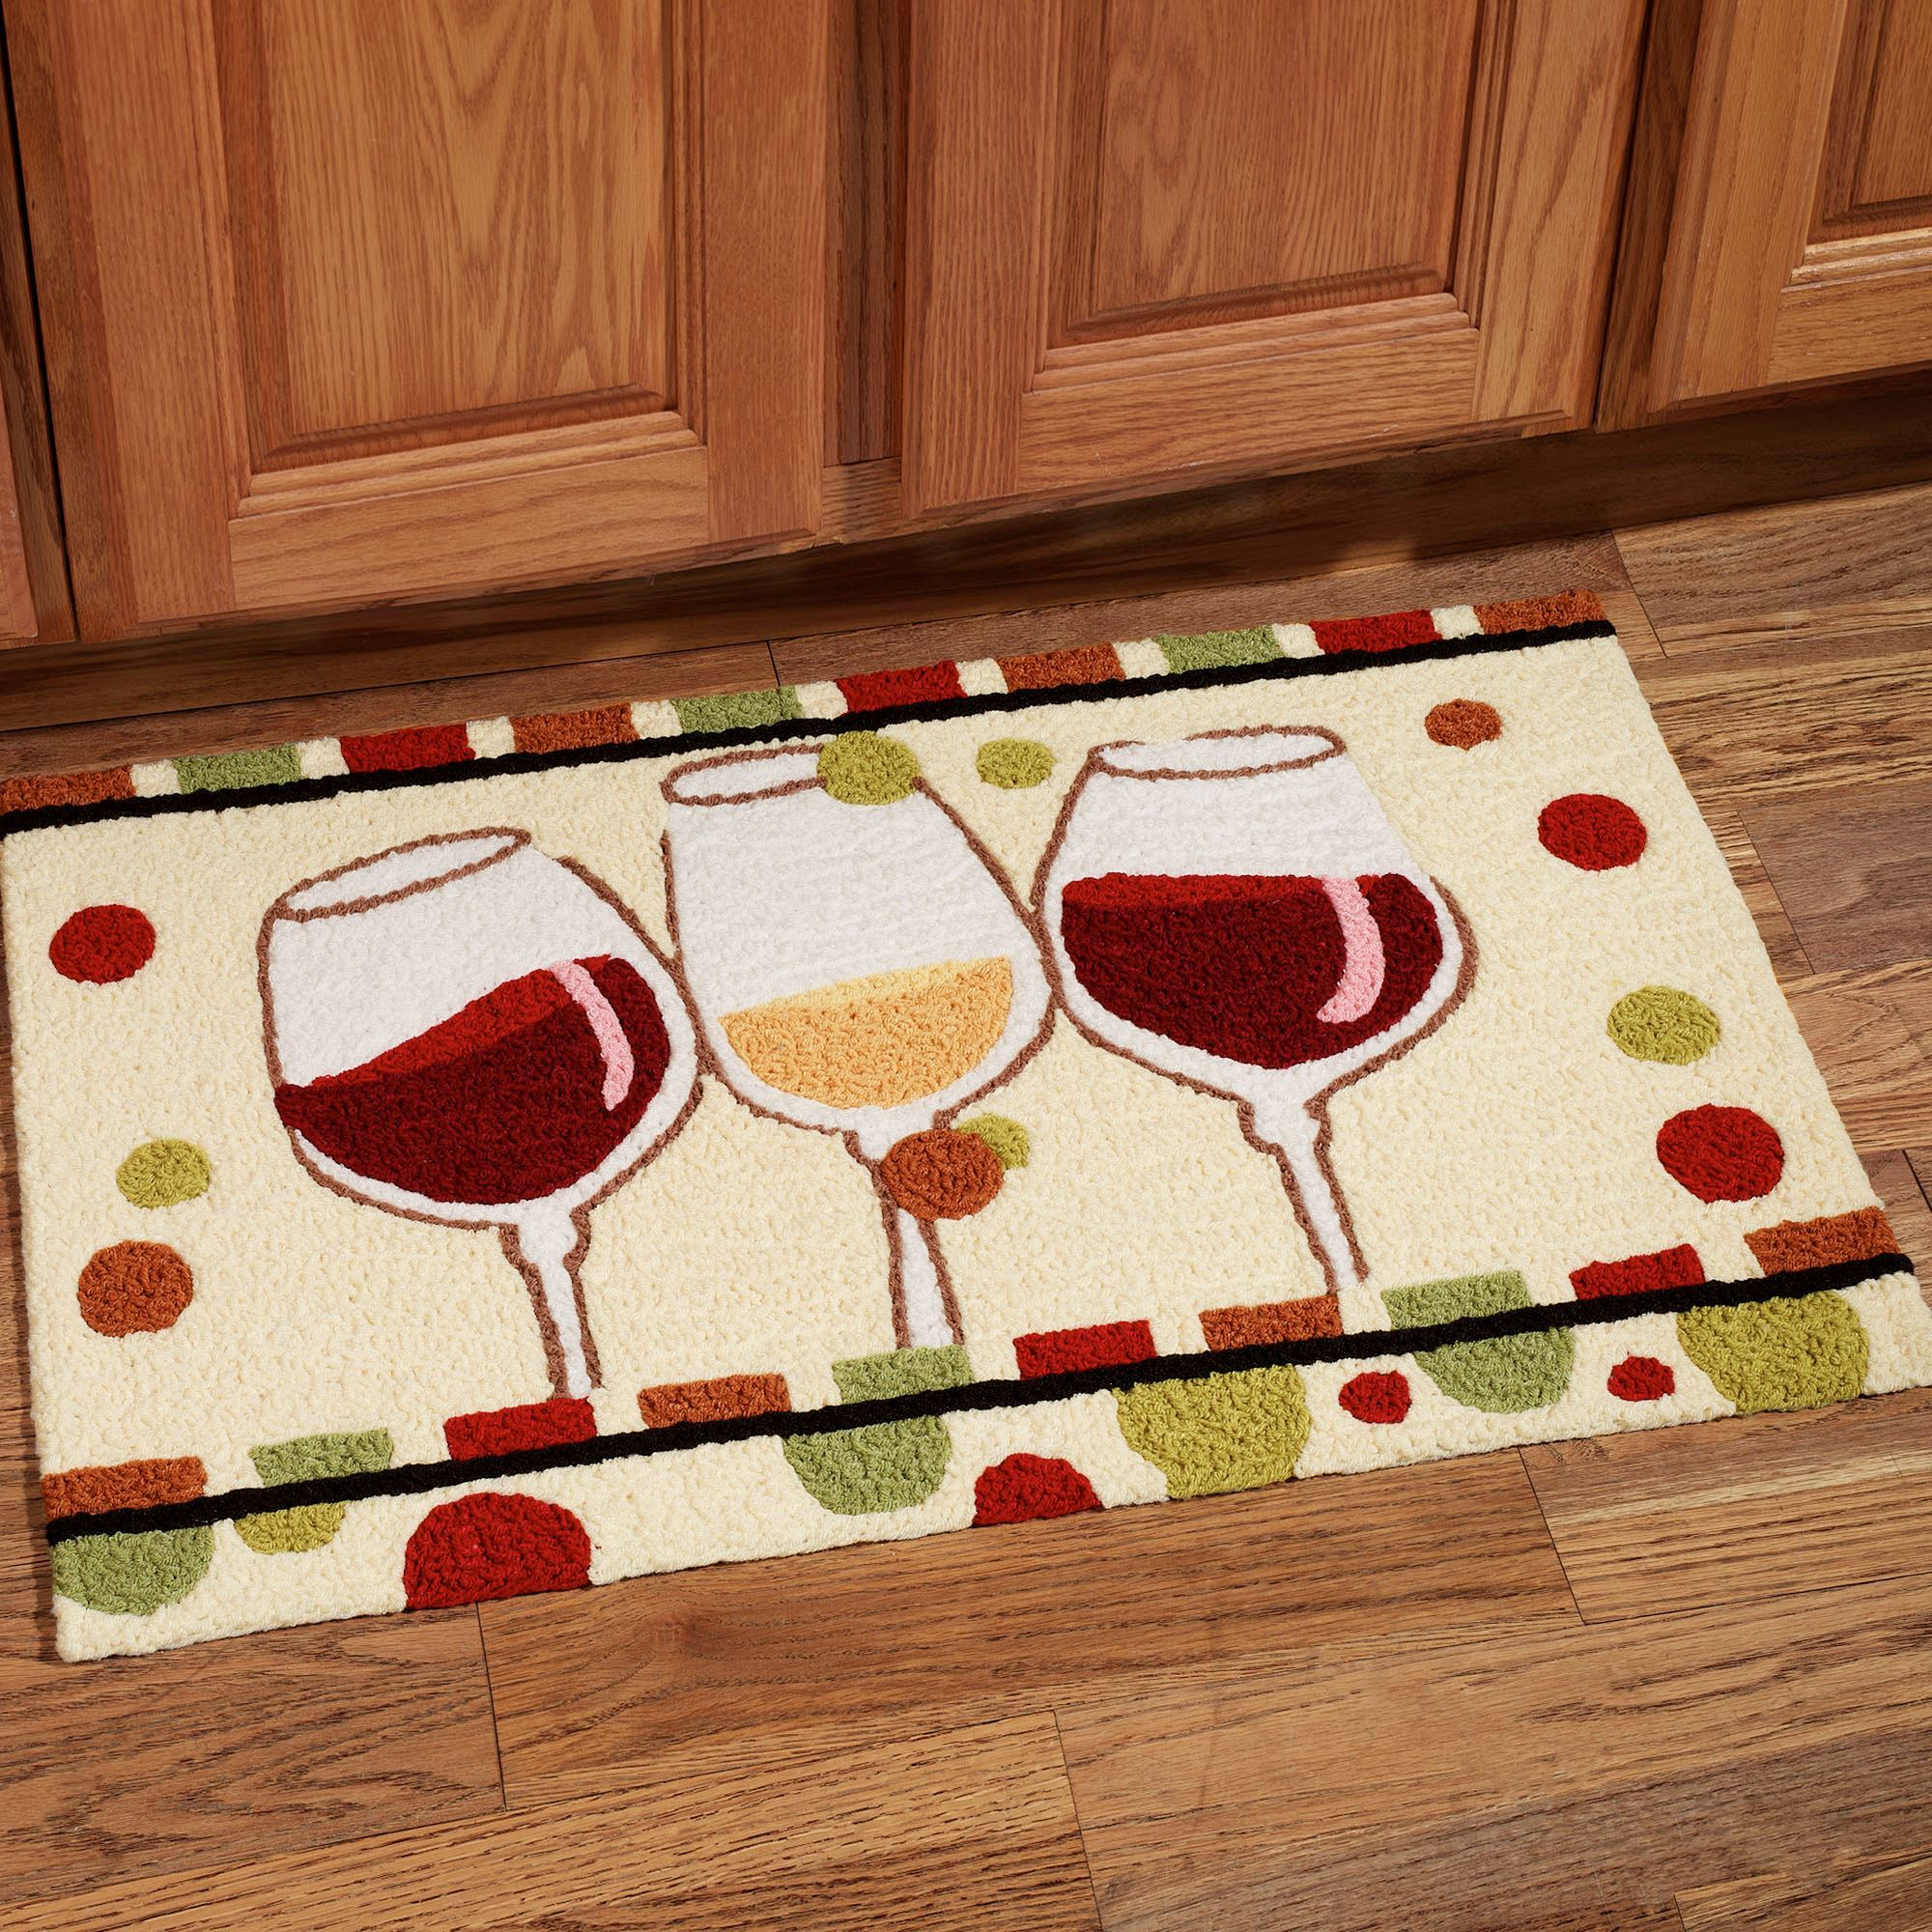 Kitchen Rugs En Vin Wine Glass Handmade Kitchen Rug